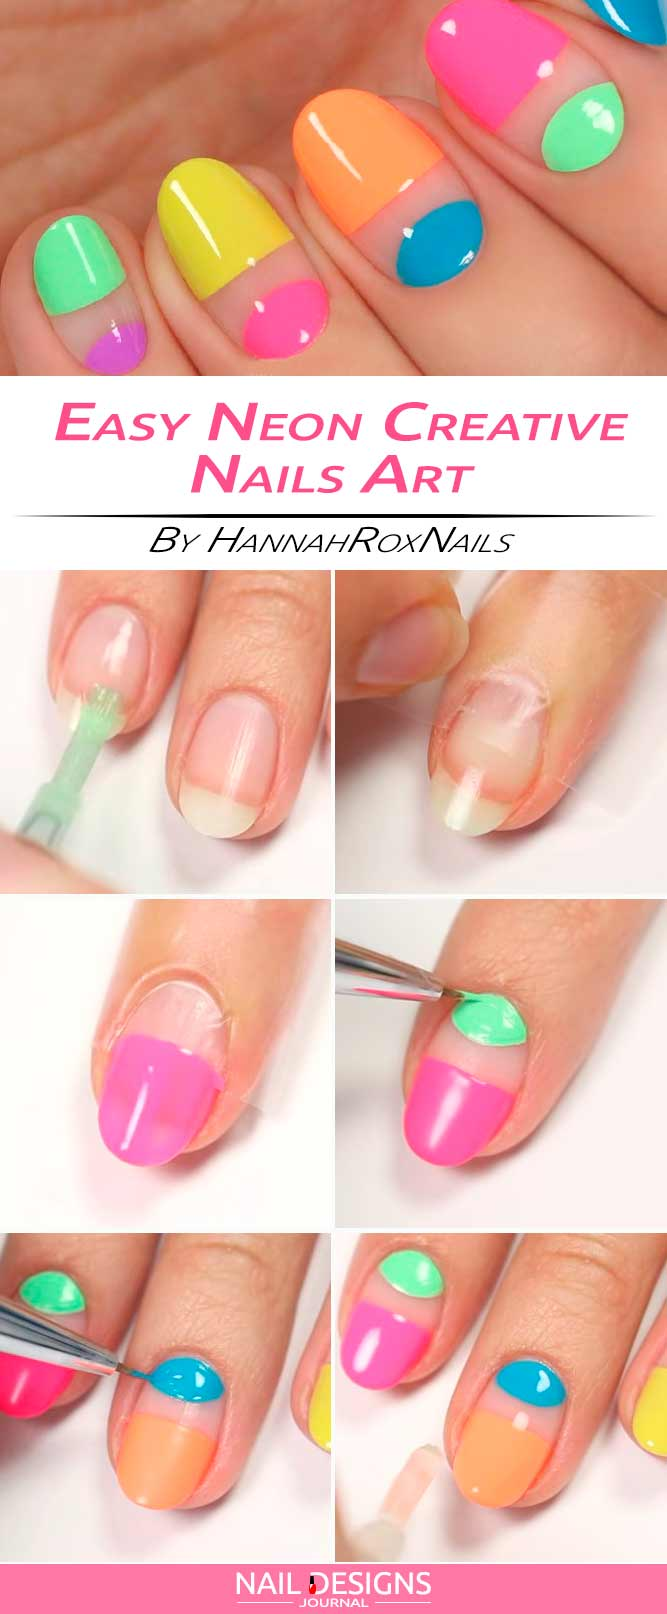 Easy And Creative Nail Design To Try | NailDesignsJournal.com